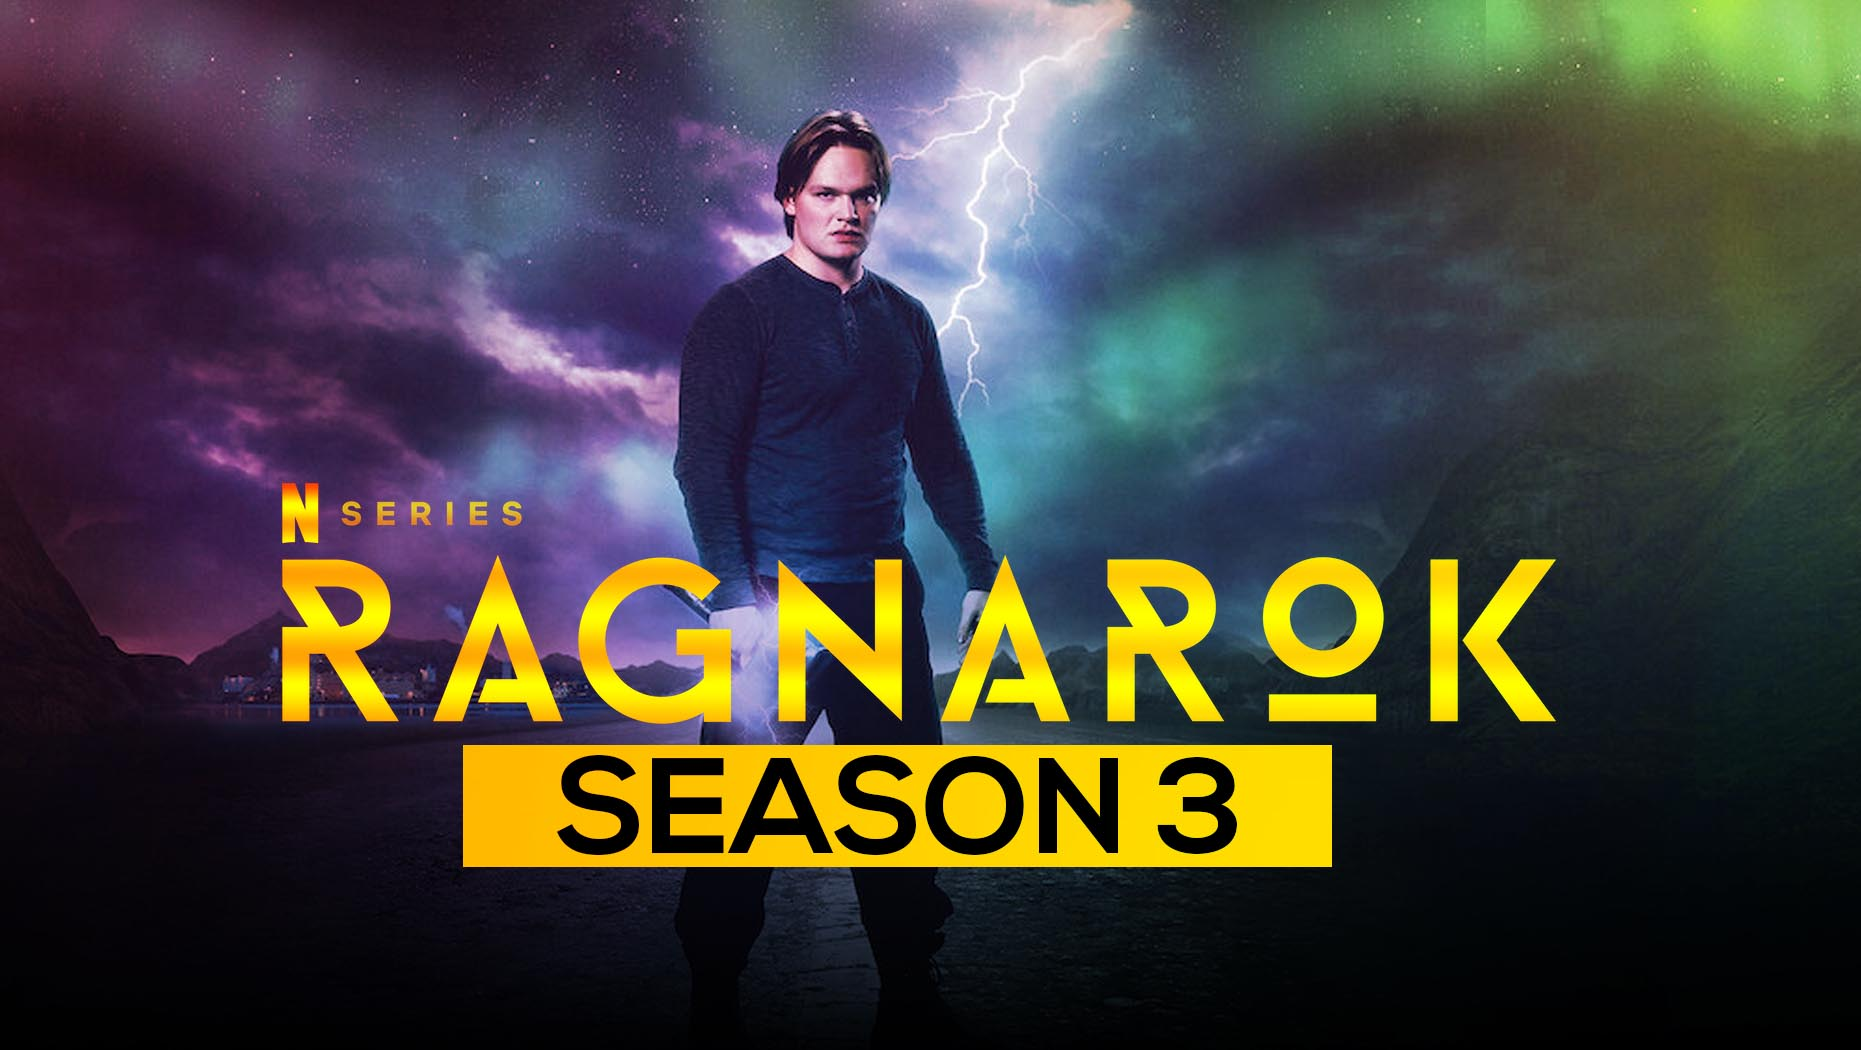 Ragnarok Season 3: Major Updates To Release Date And Cast